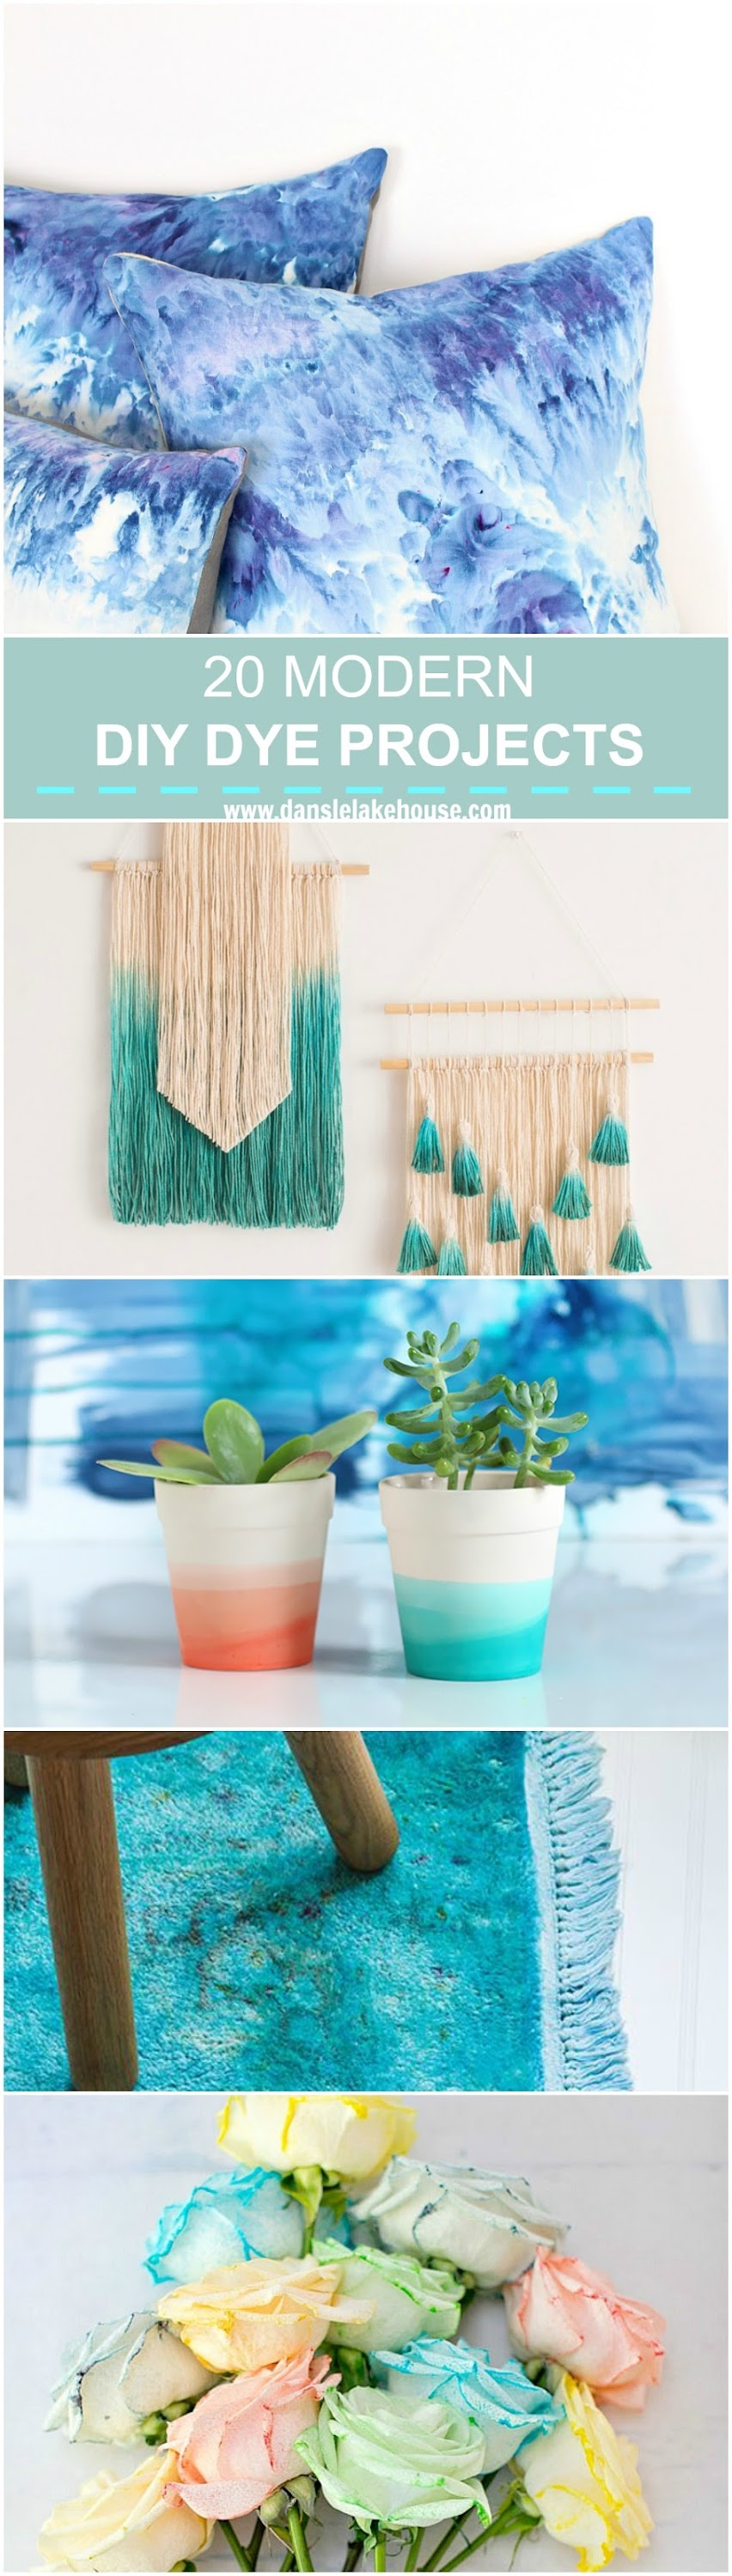 DIY dye project ideas